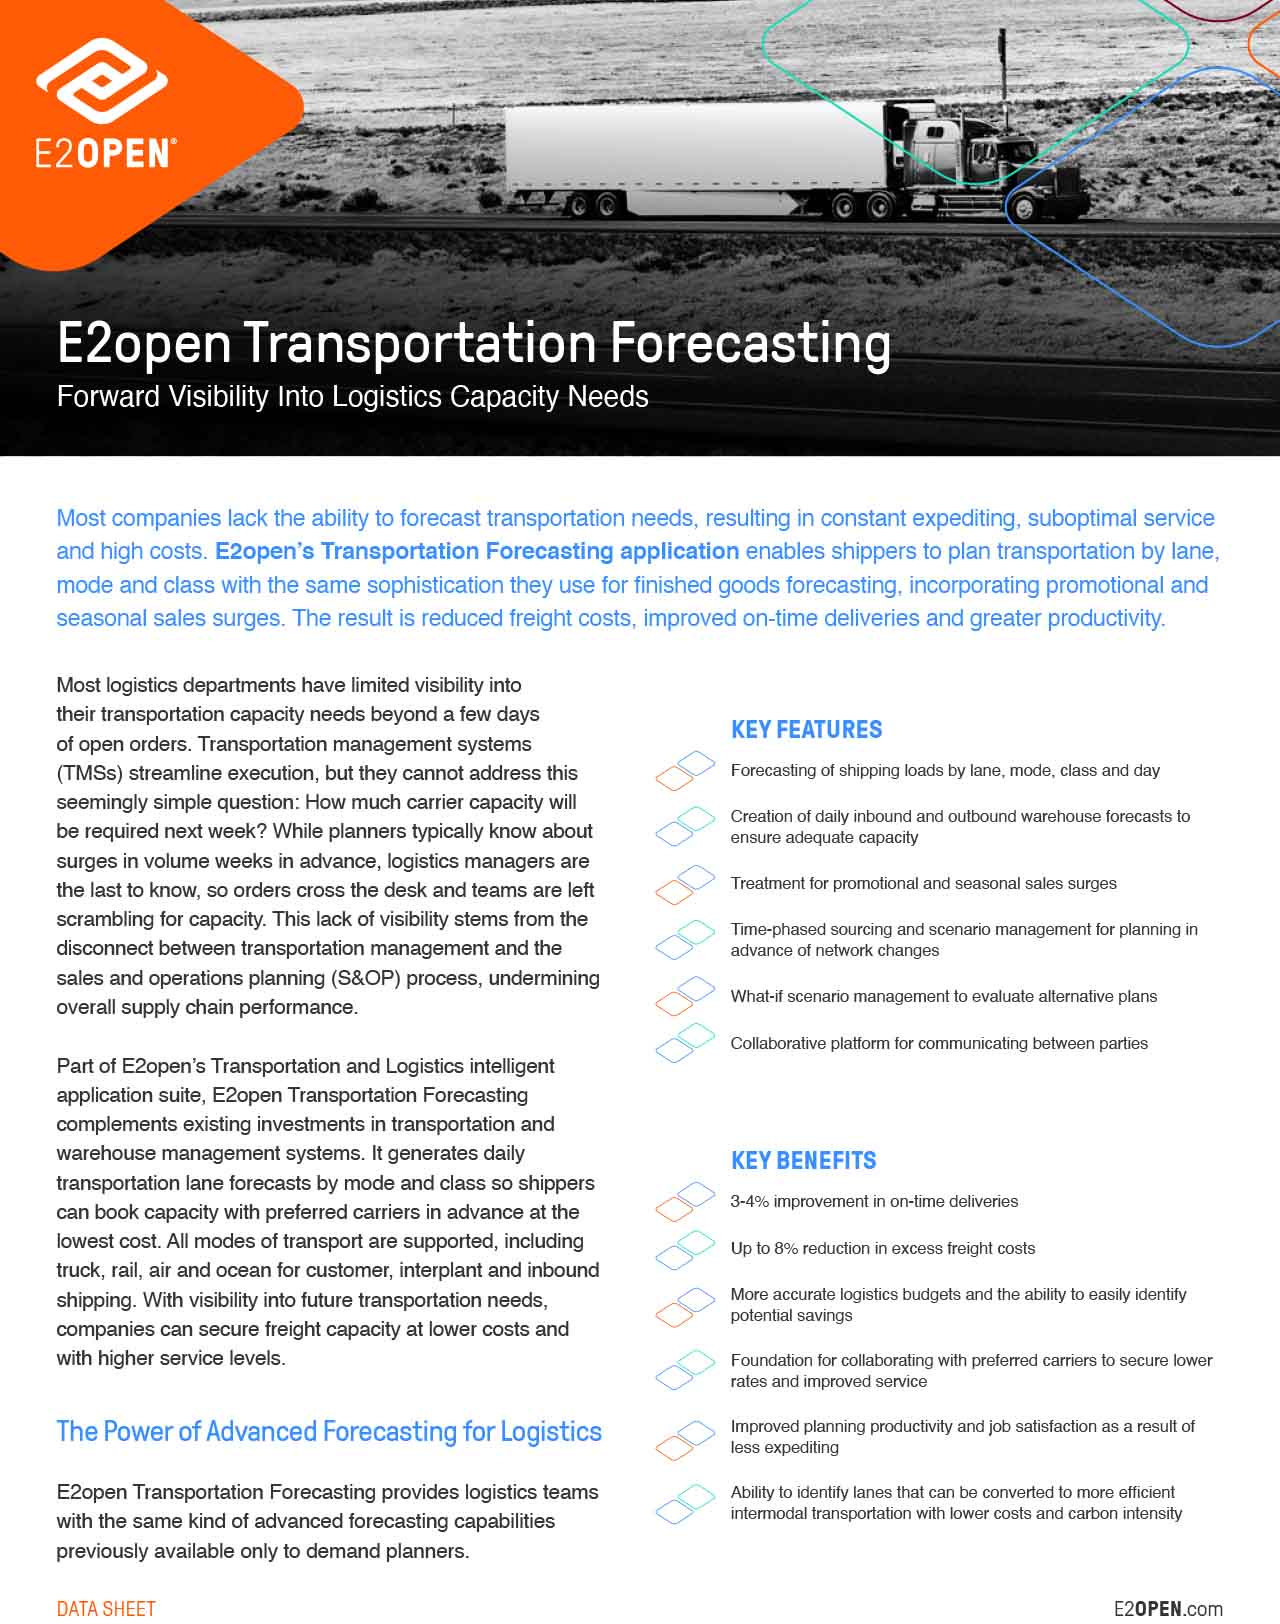 E2open Transportation Forecasting Data Sheet